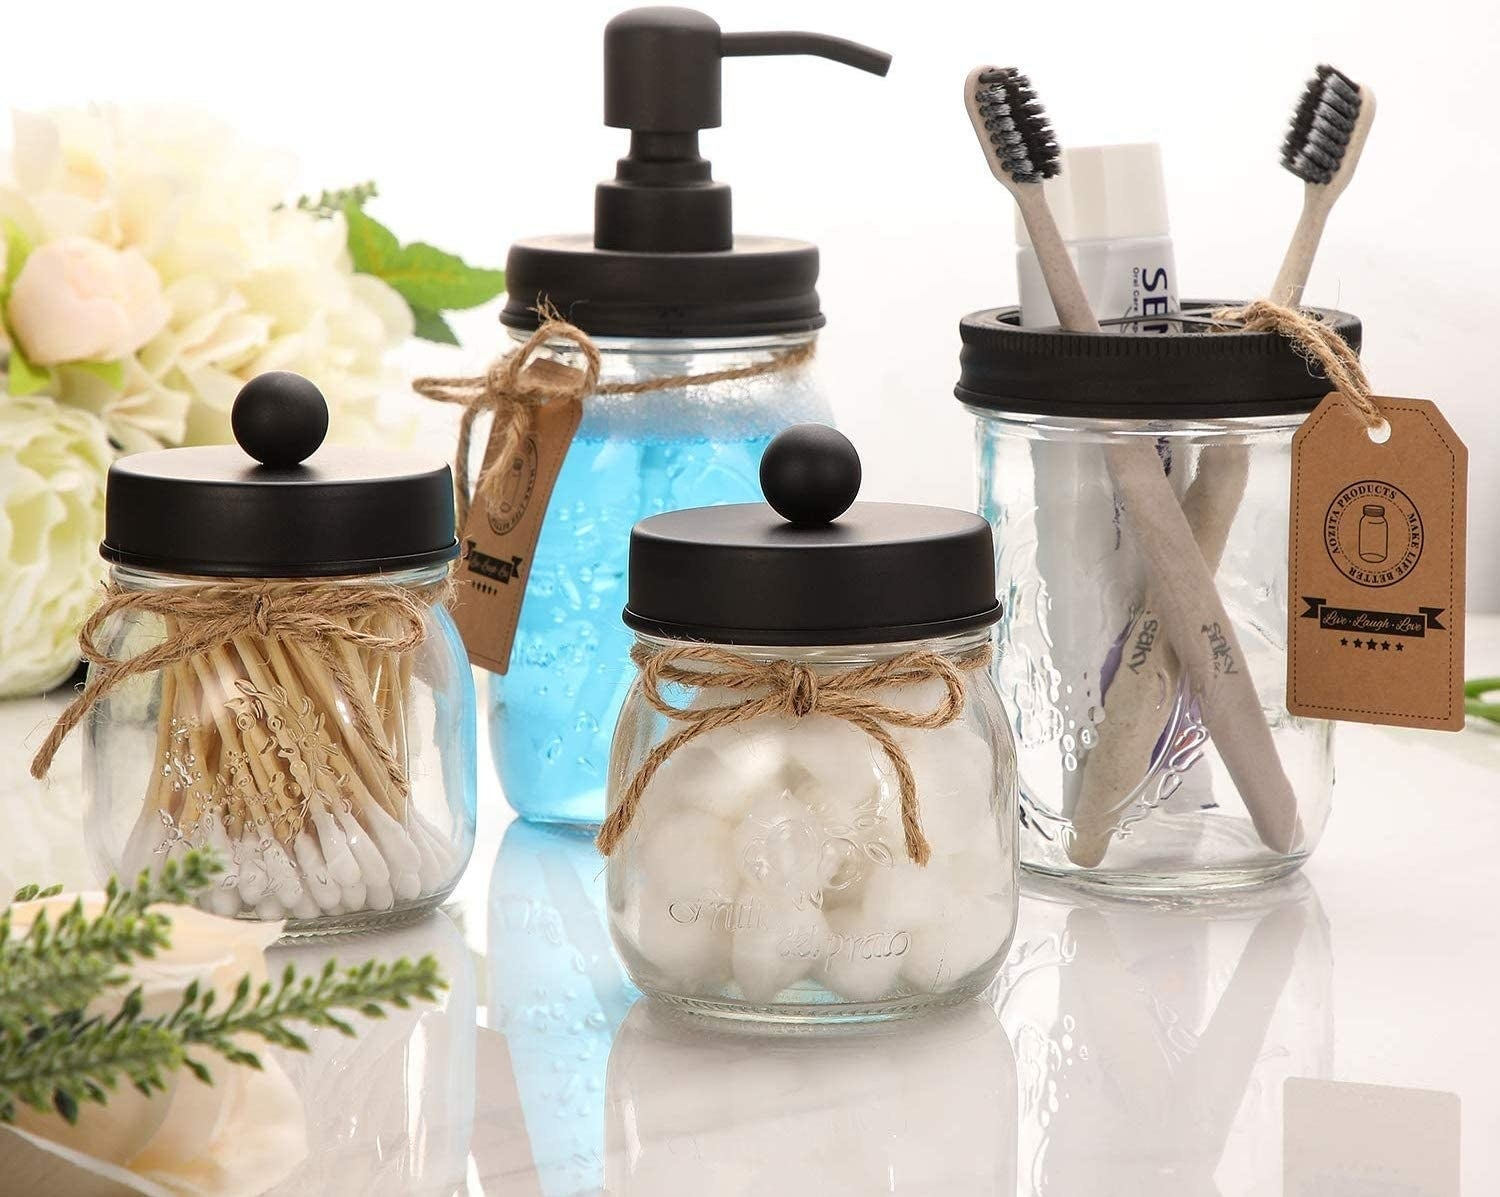 Four mason jars in use on counter